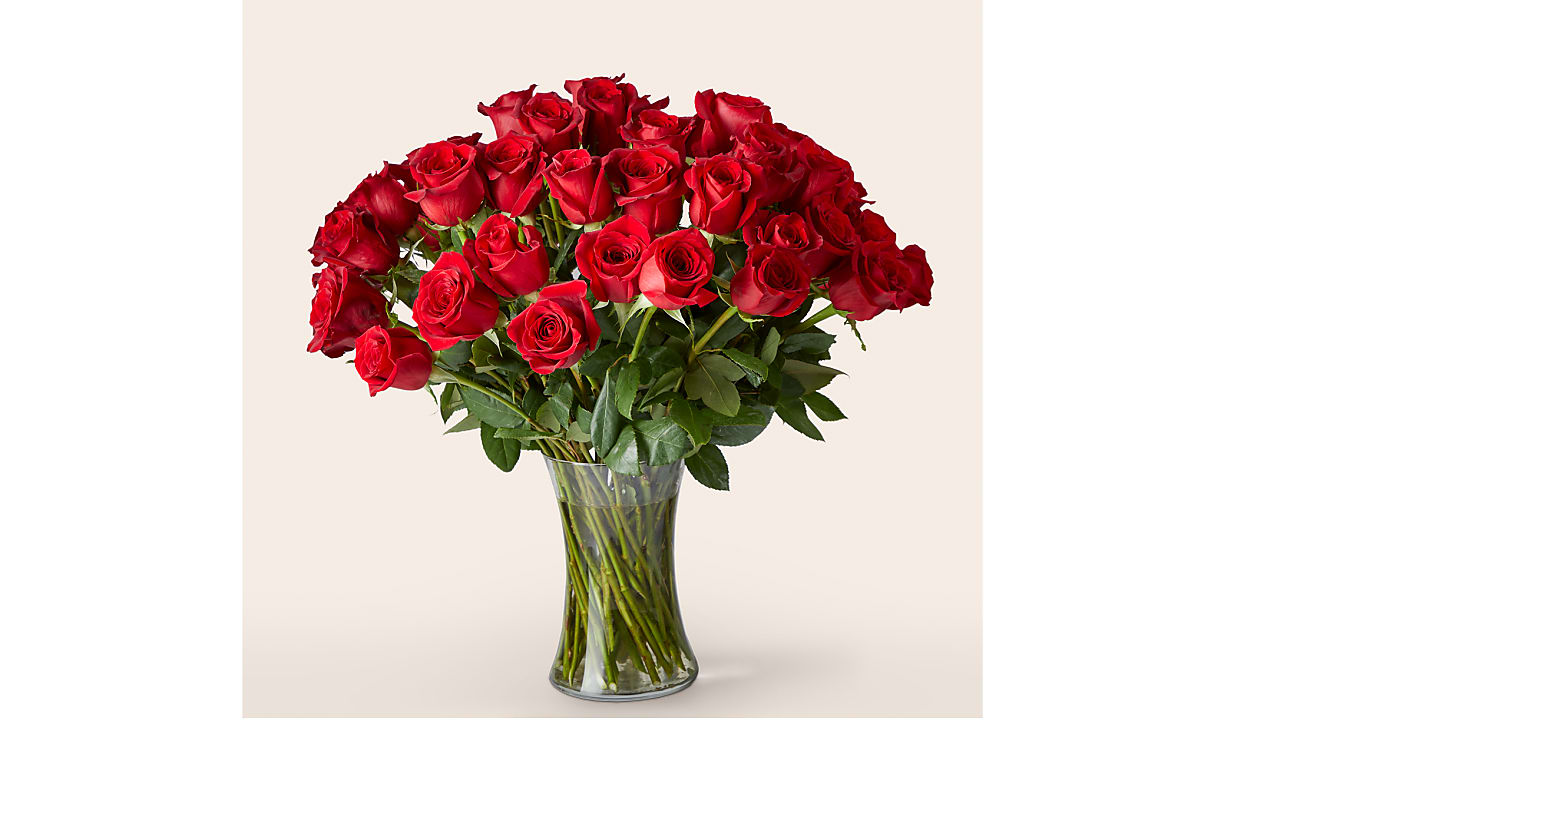 Fifty Long Stem Red Roses - Image 1 Of 2